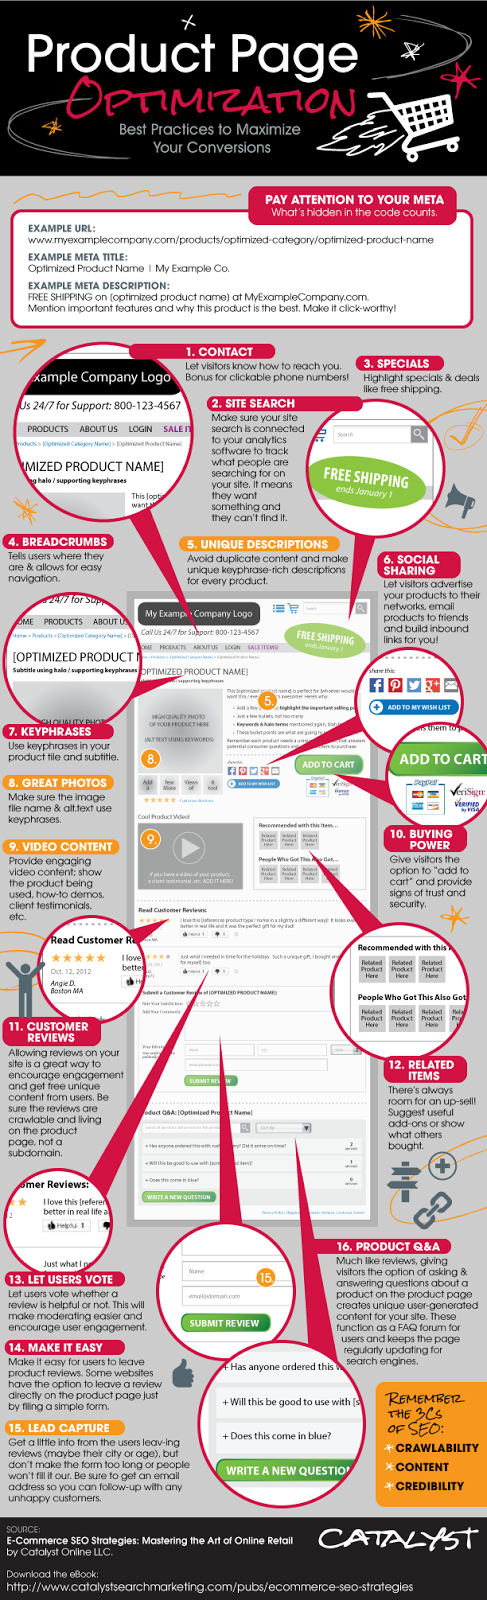 Product Page Infographic - Catalyst